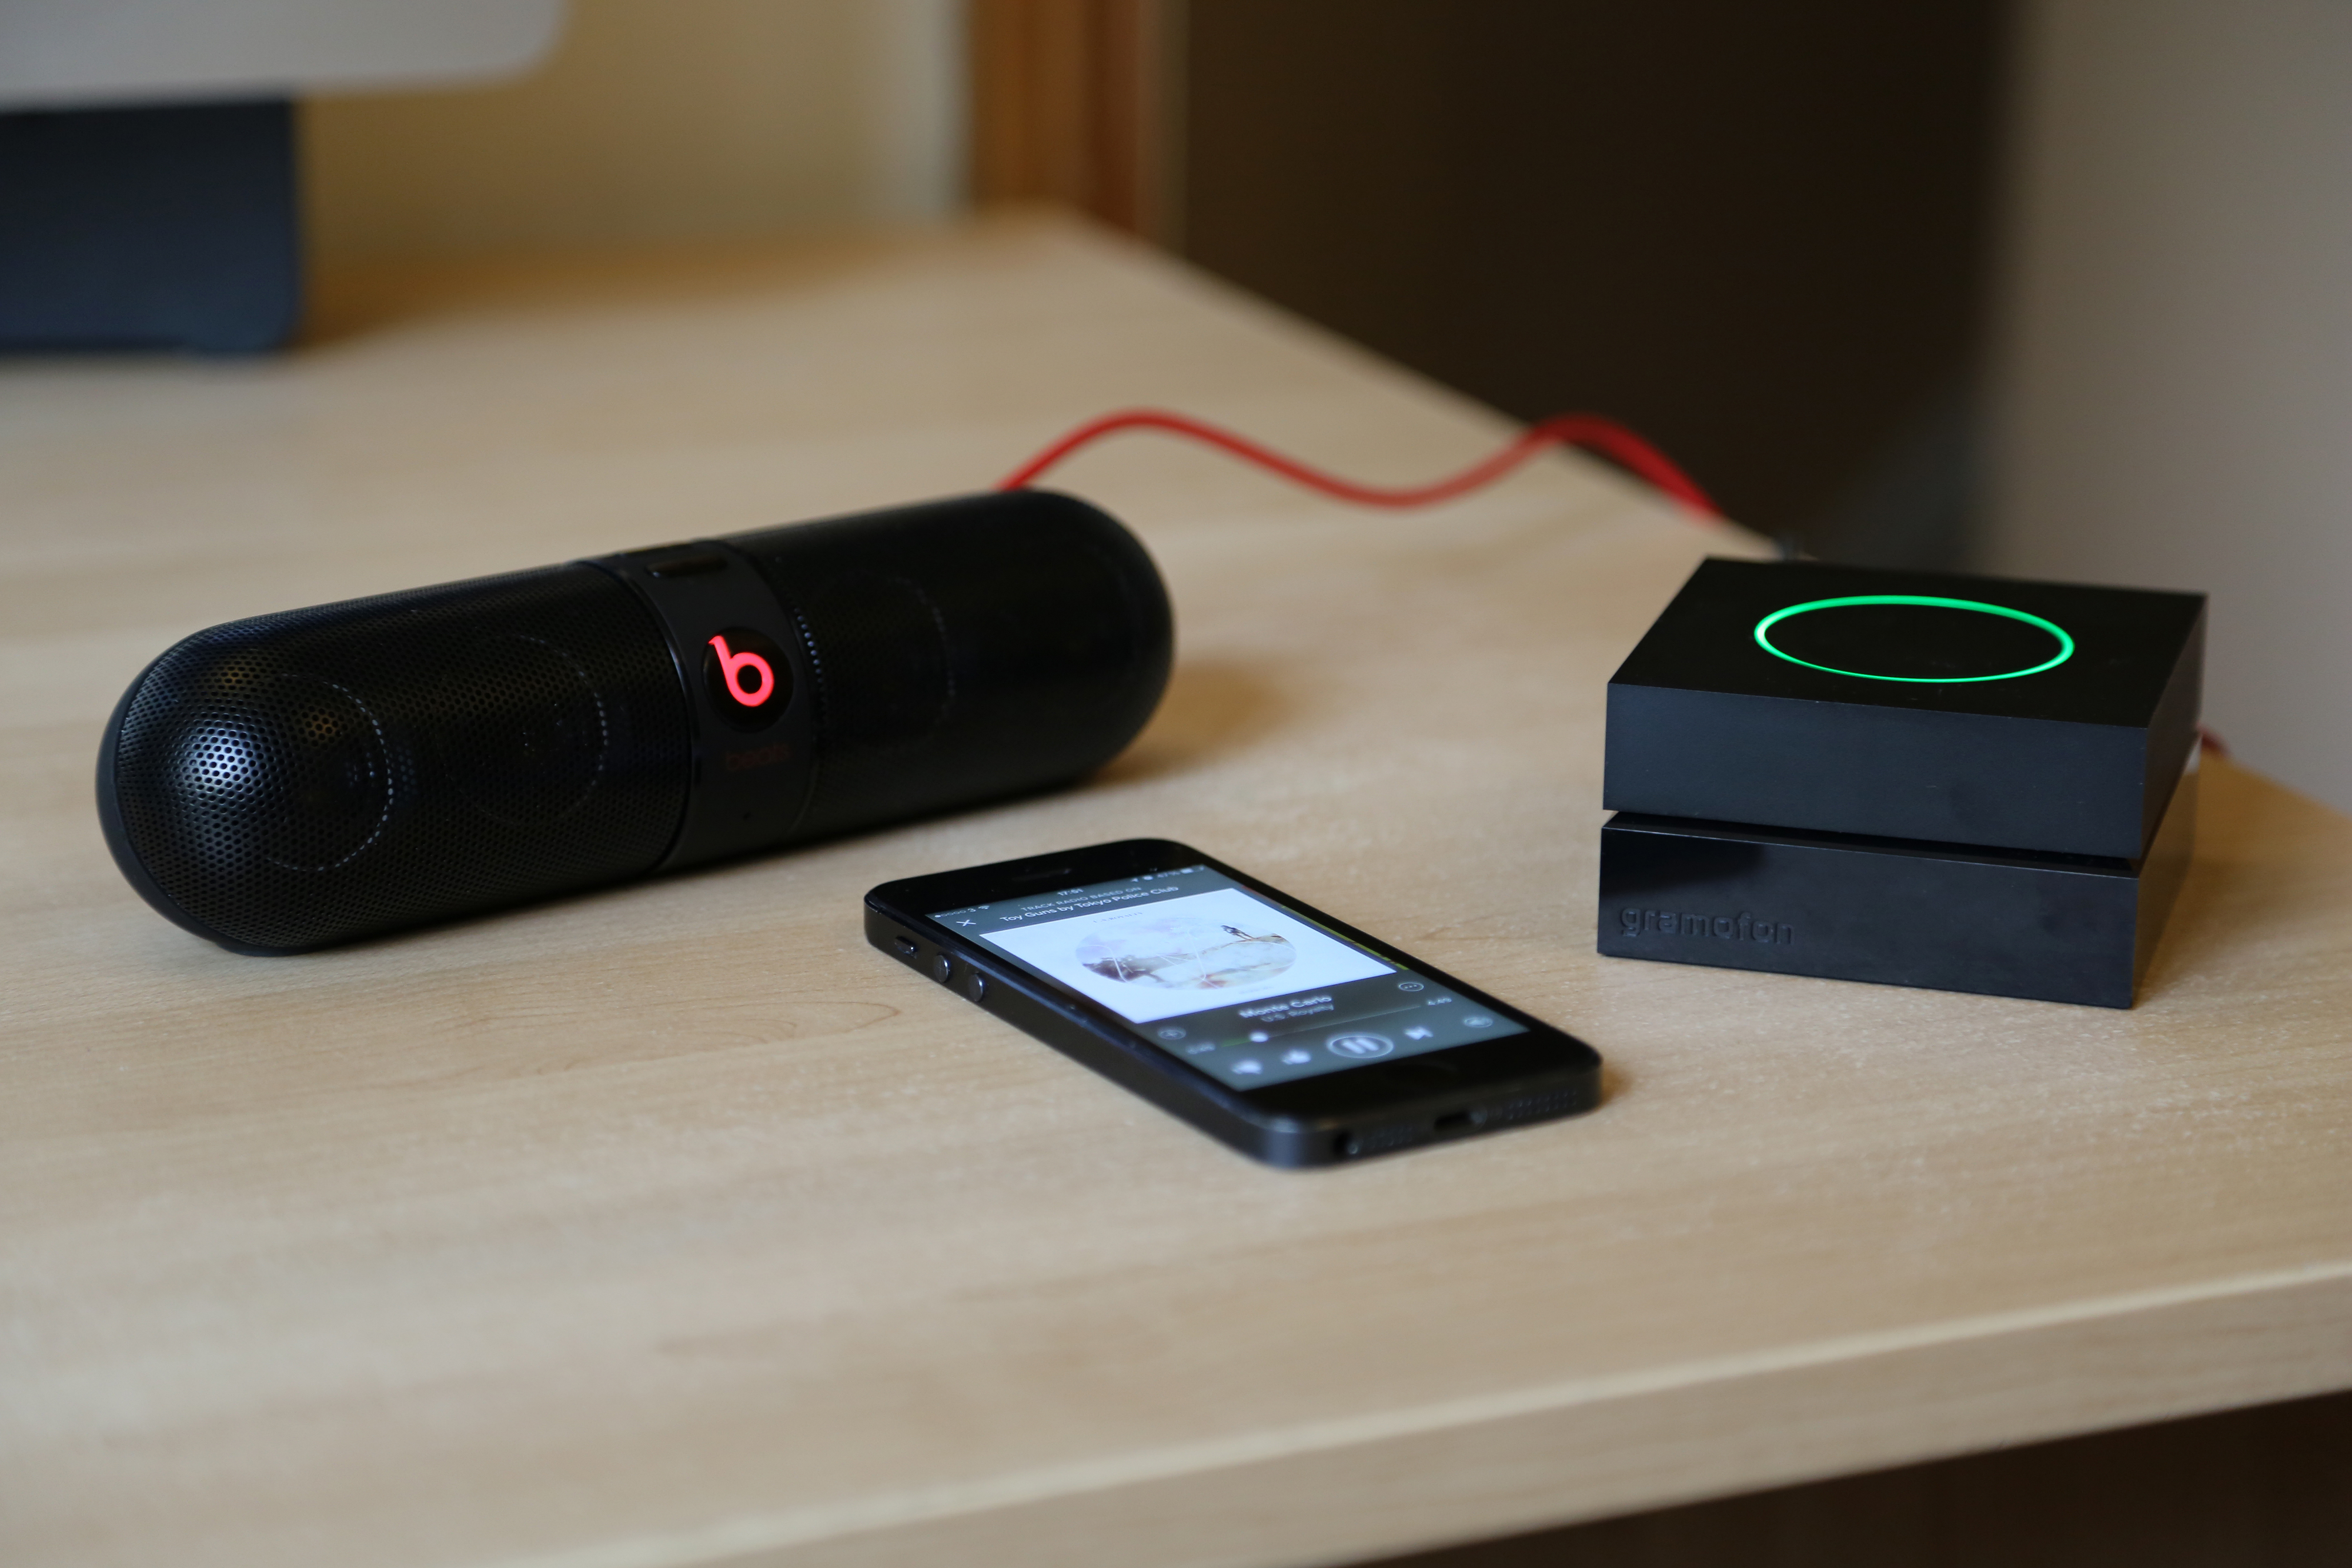 Gramofon Hands-On: Streaming Spotify to Any Speaker